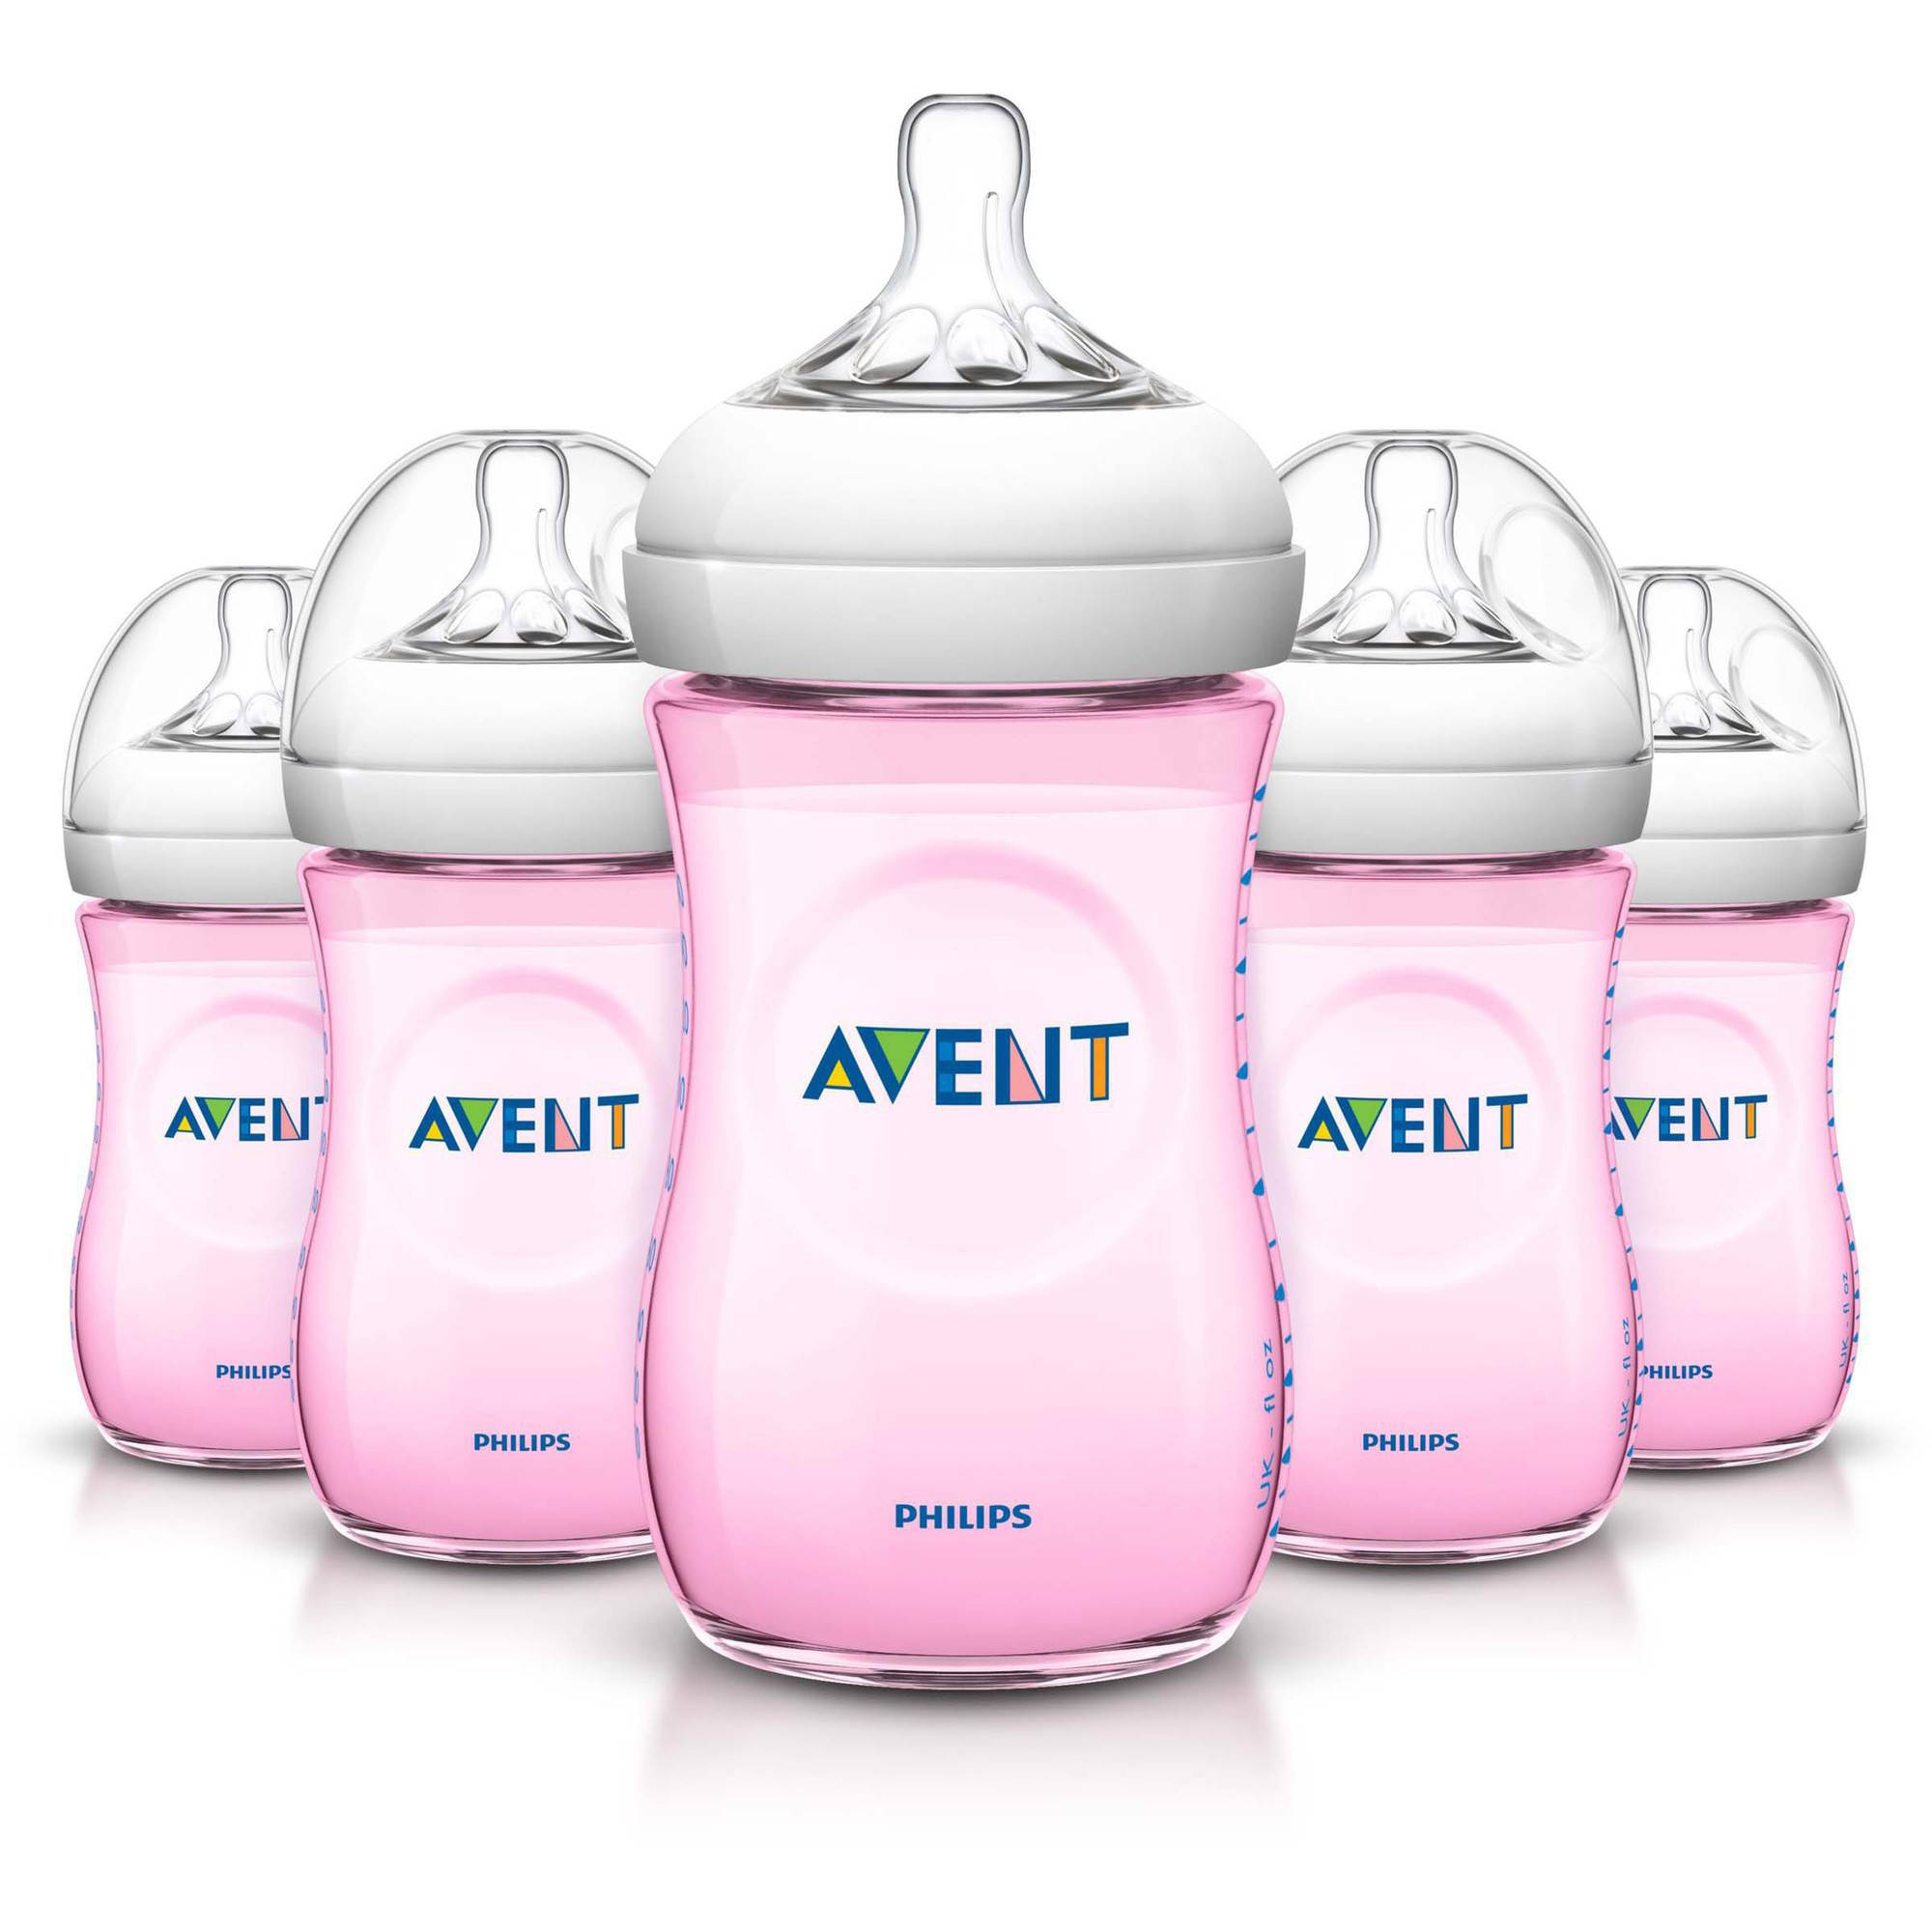 Philips Avent BPA Free Natural Pink Baby Bottles, 9 Ounce, 5 Pack by Philips